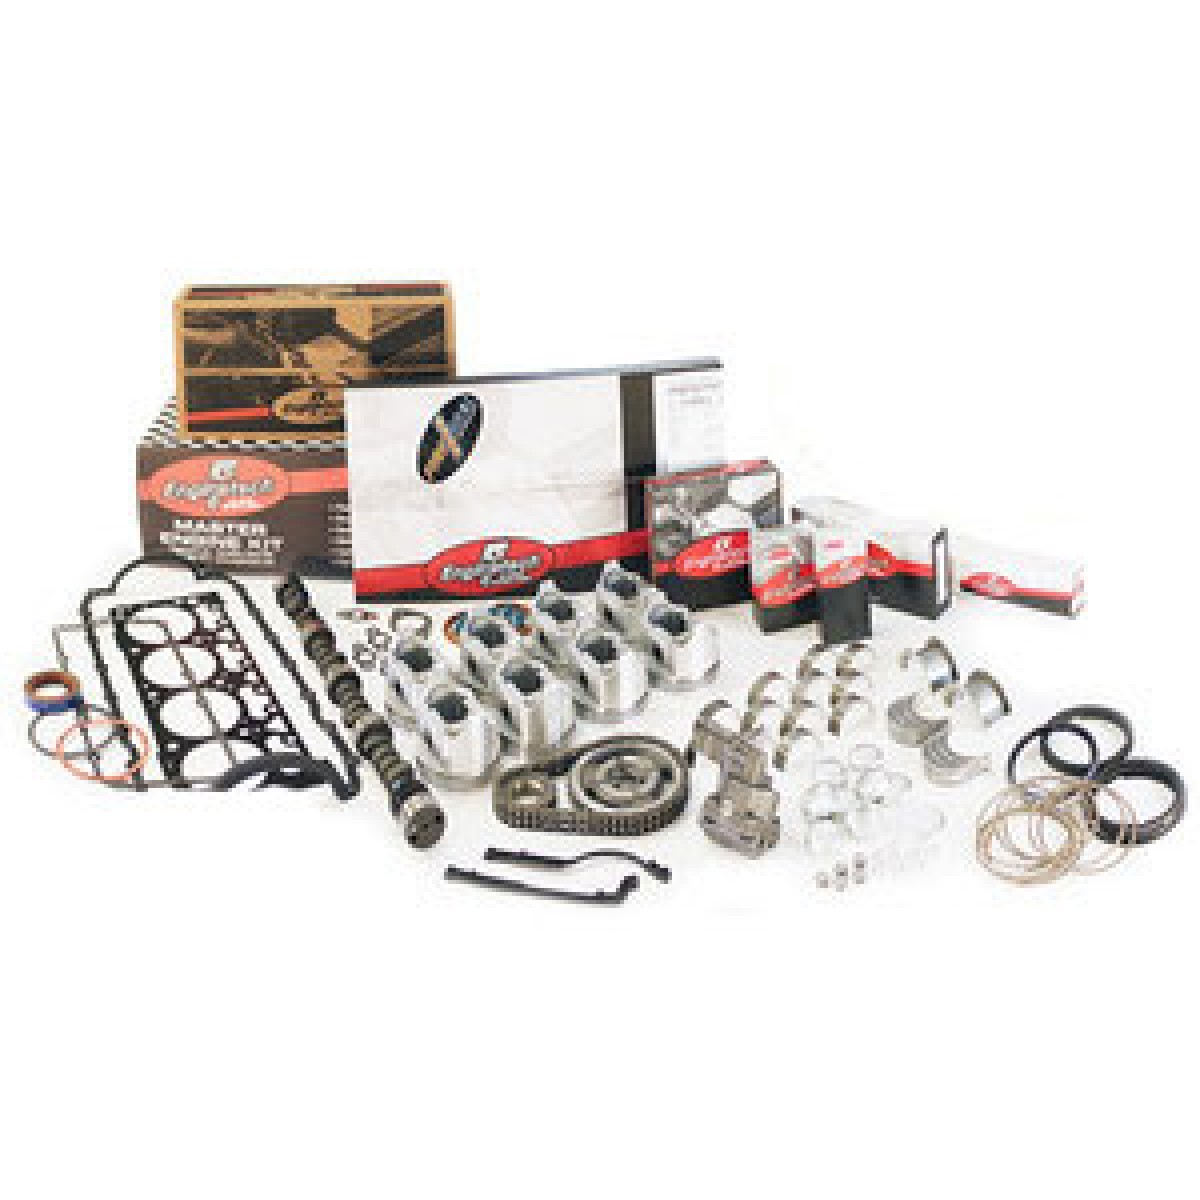 Enginetech Mkf302g Free Freight Us Exc Ak Hi 1985 1986 Ford For A 302 Wiring Harness Kits Economy Master Overhaul Kit